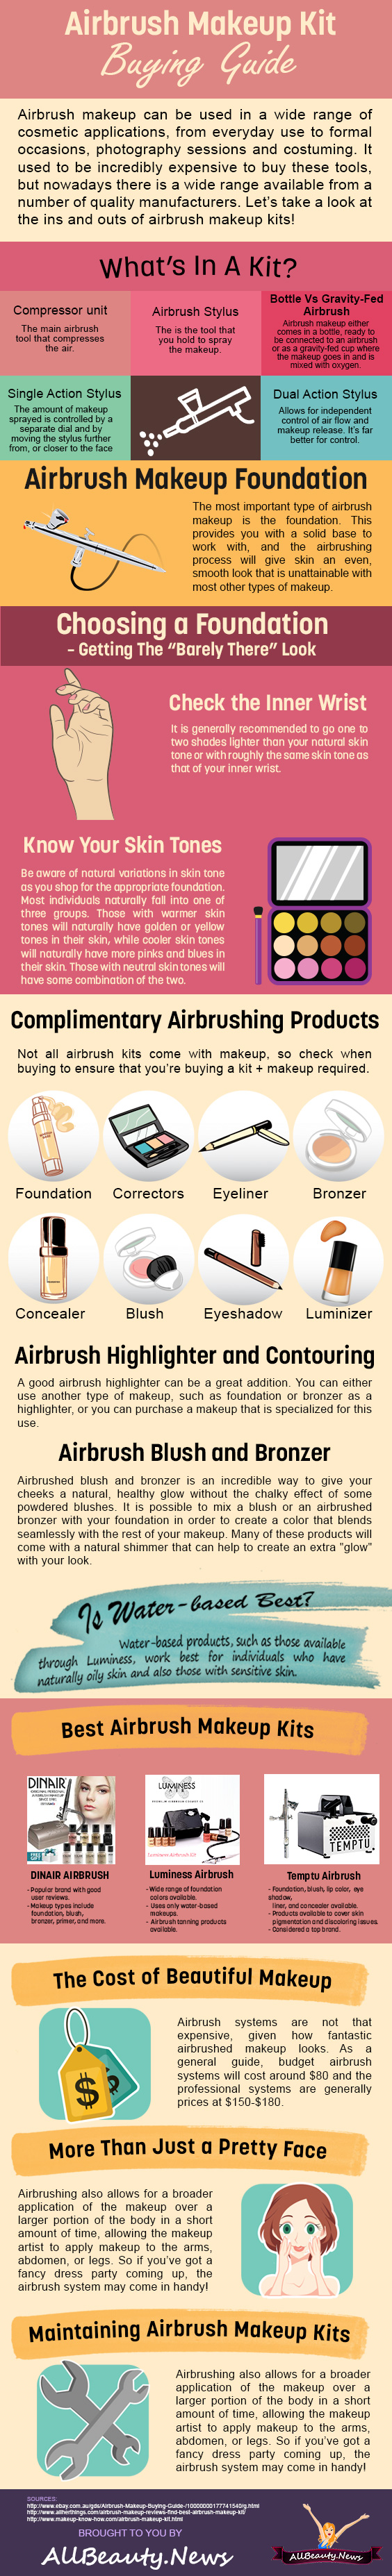 How To Find The Best Airbrush Makeup Kit